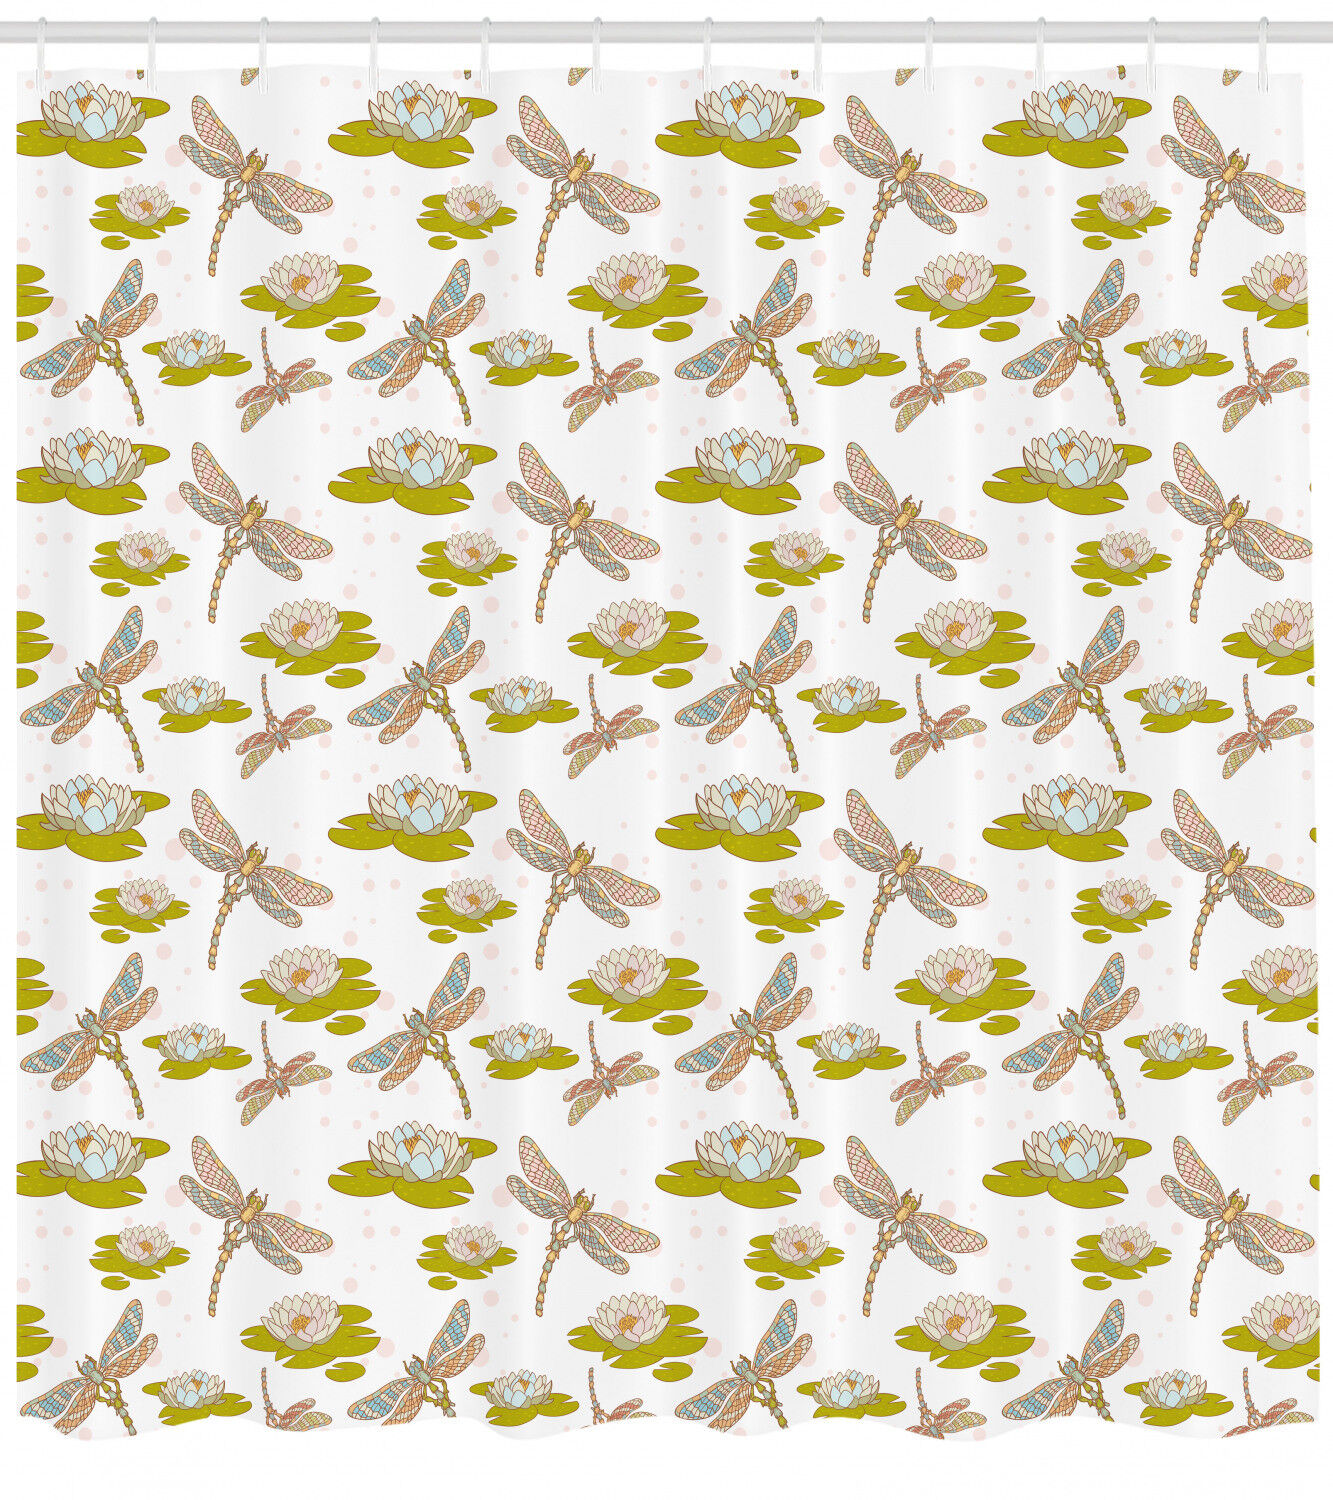 Dragonflies Pattern Shower Curtain Fabric Decor Set With Hooks 4 Grosses 981174